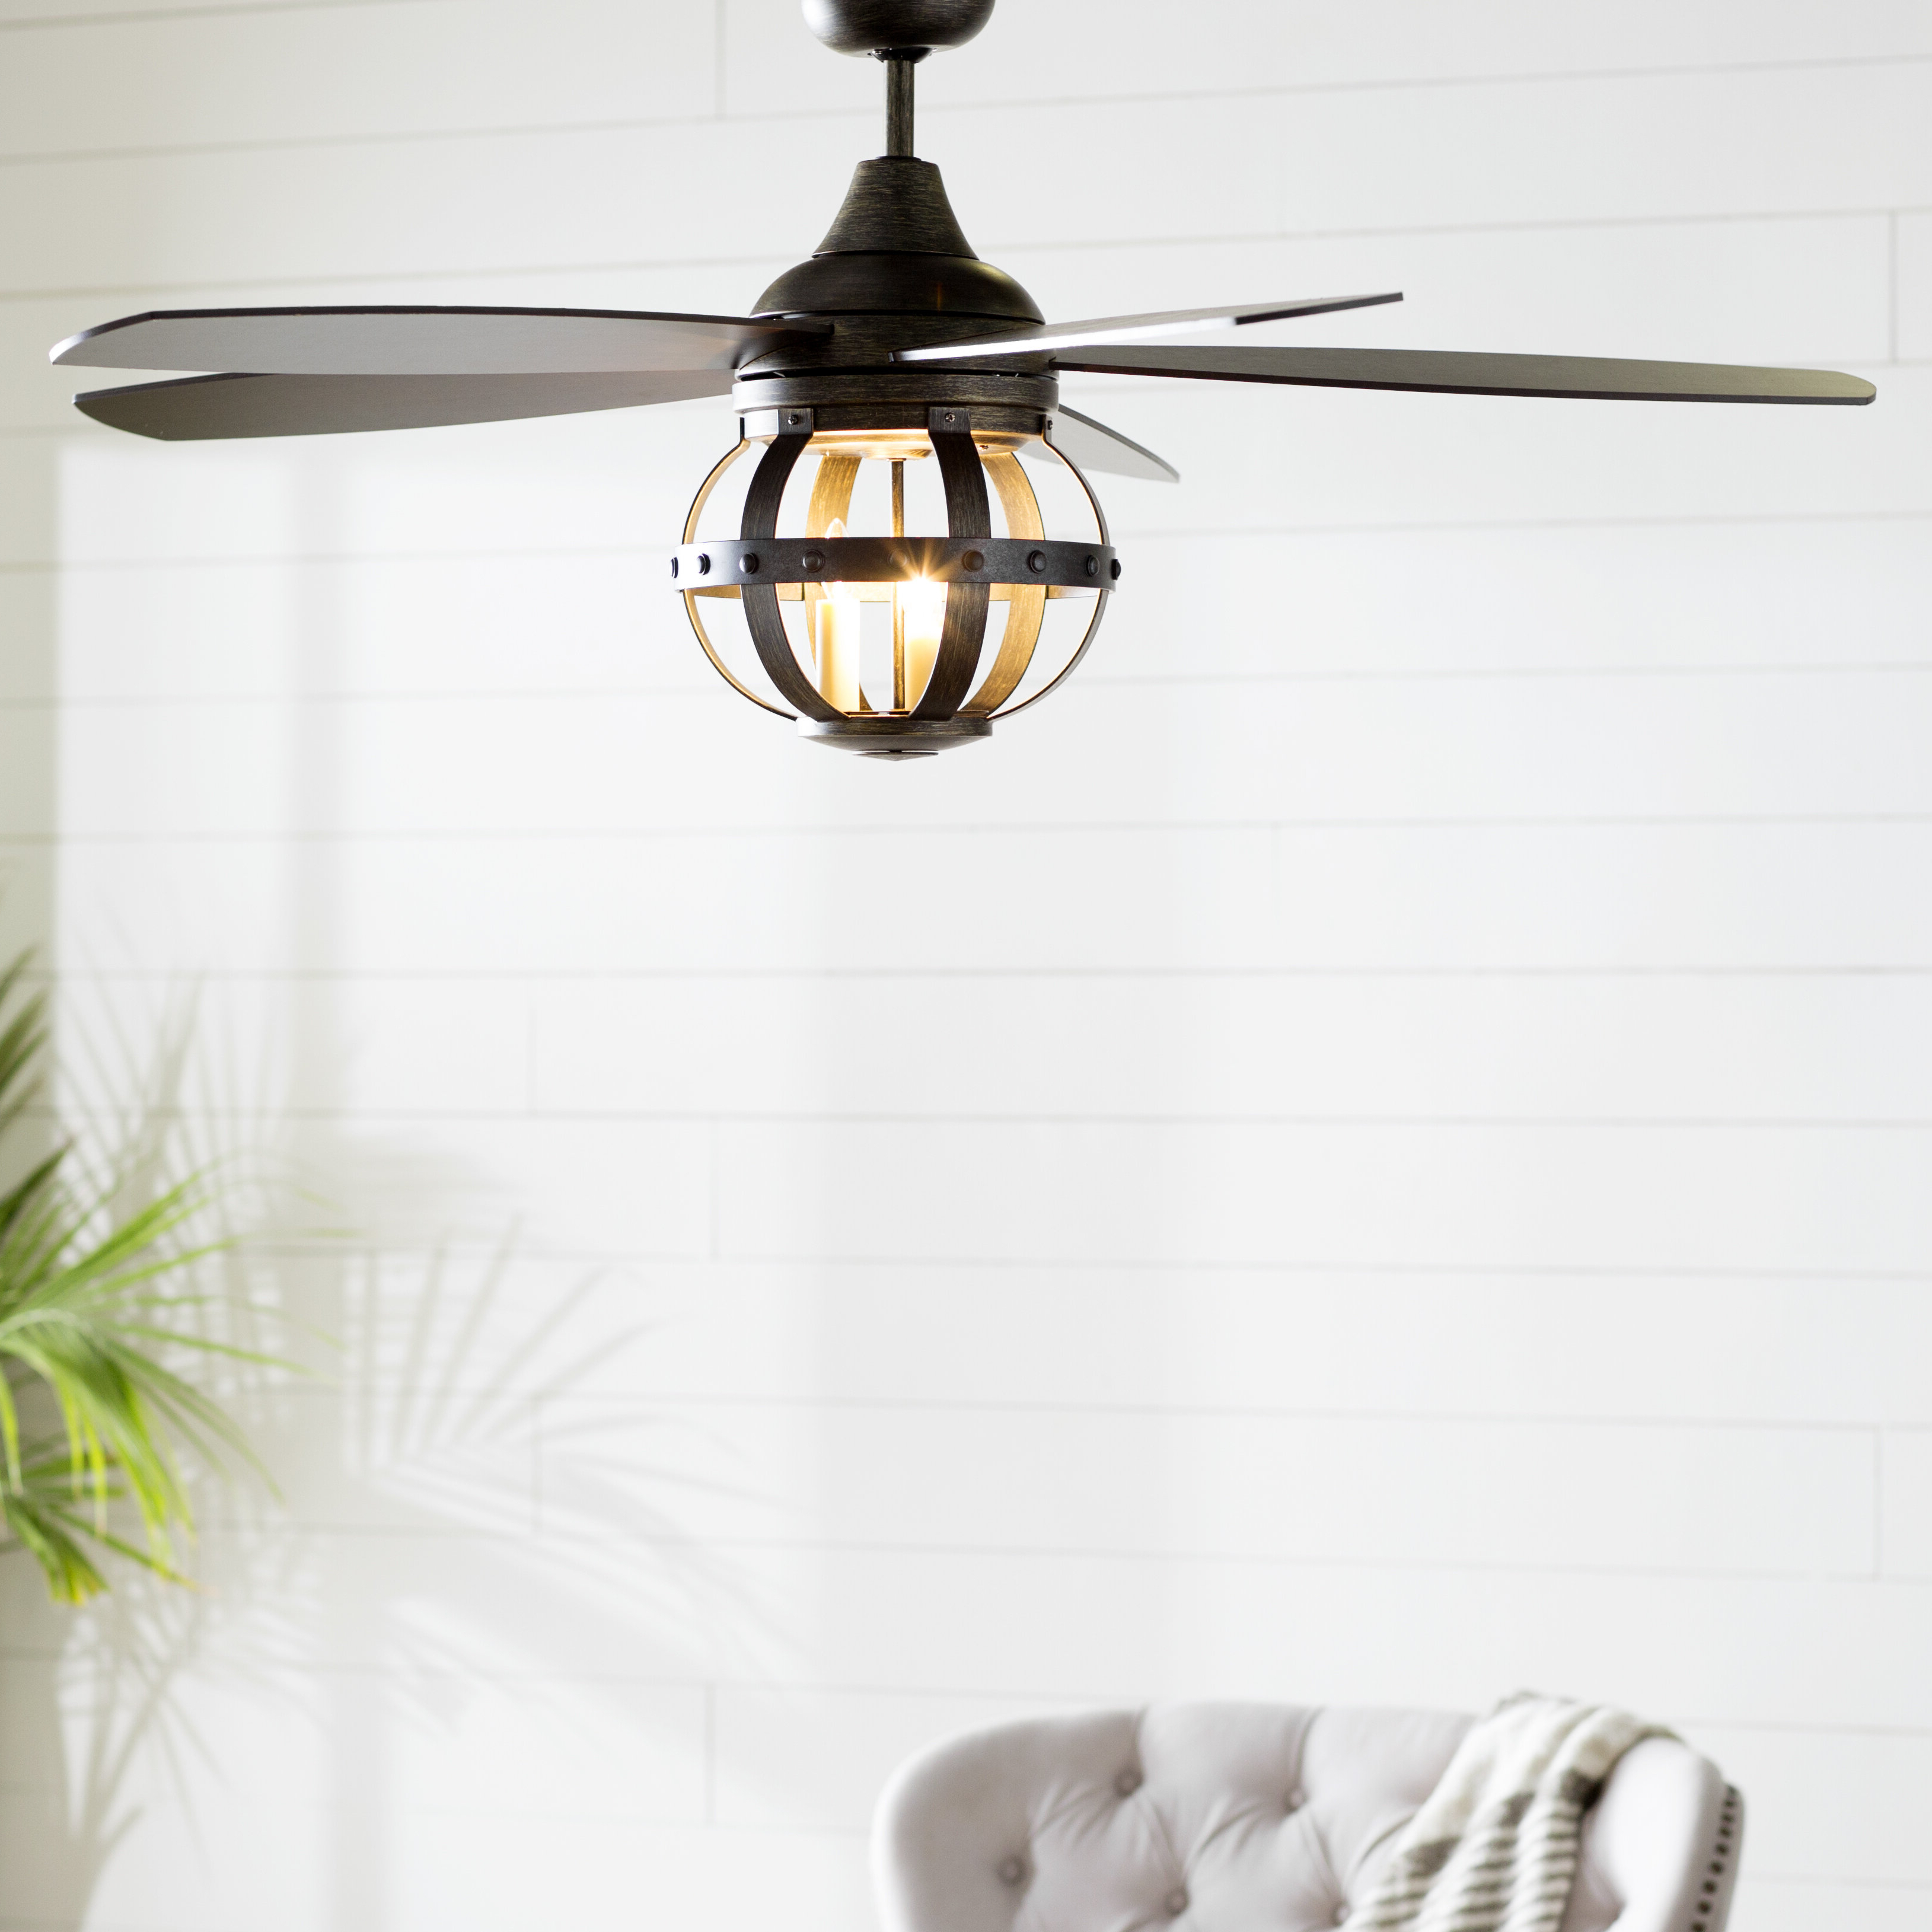 """2019 52"""" Wilburton 5 Blade Ceiling Fan With Remote, Light Kit Included With Regard To Wilburton 3 Blade Outdoor Ceiling Fans (View 1 of 20)"""